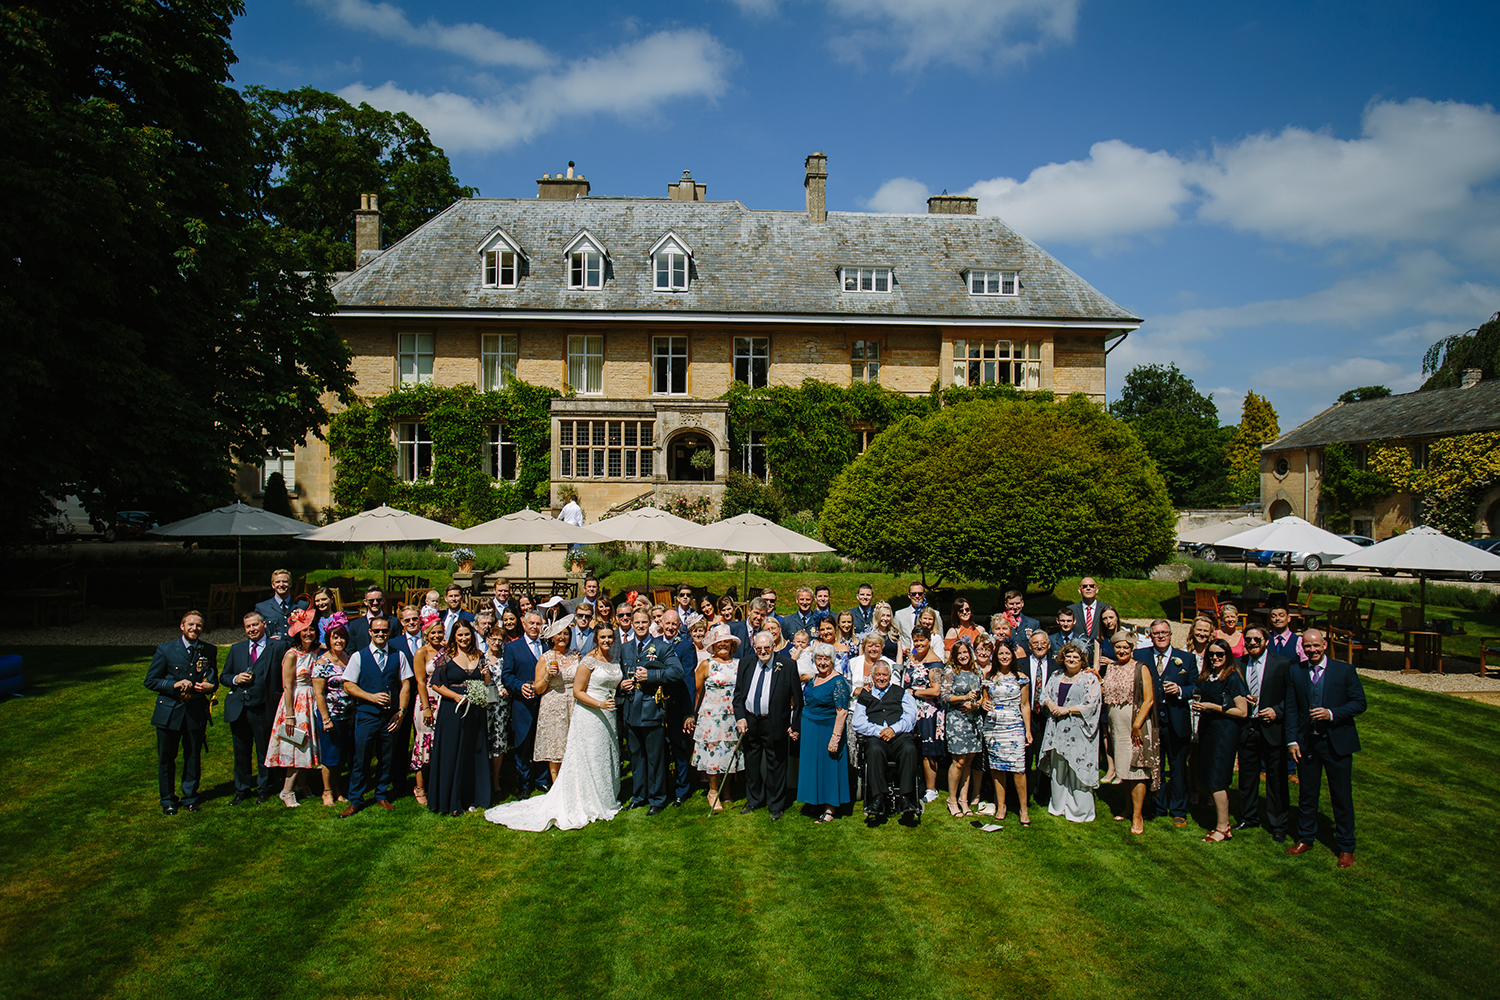 slaughters-manor-house-gloucester-wedding-photography-32.jpg